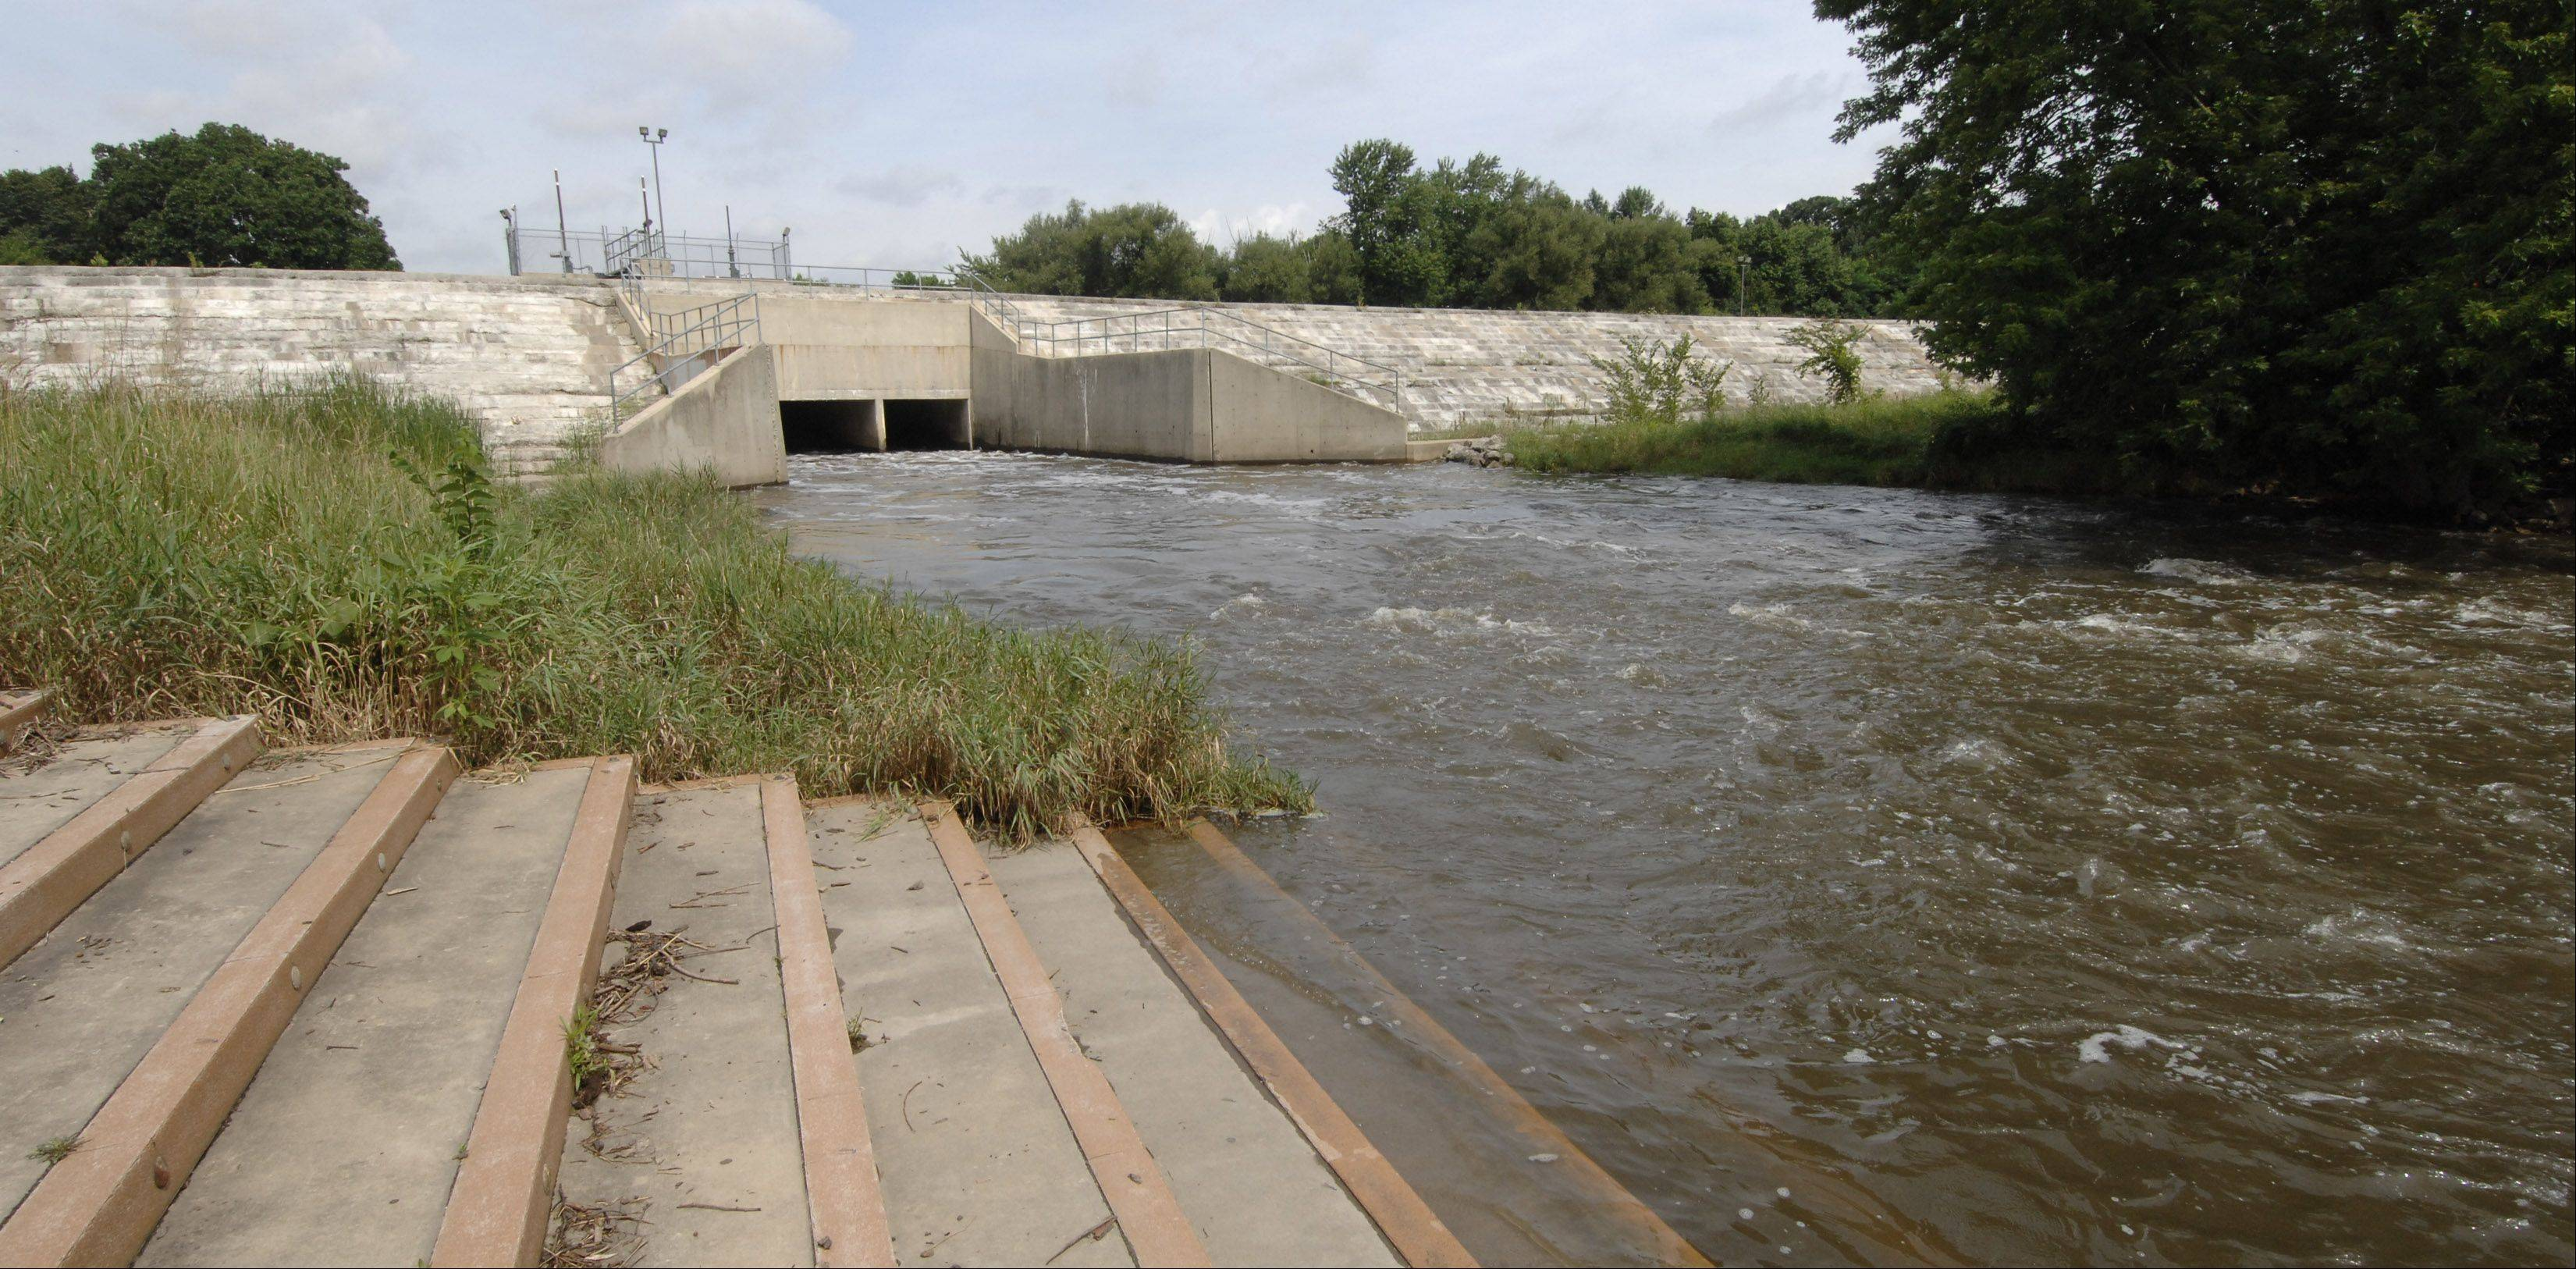 A newly released report concludes that Fawell Dam near Naperville may contribute to increased flood elevations in parts of Warrenville during large storm events.